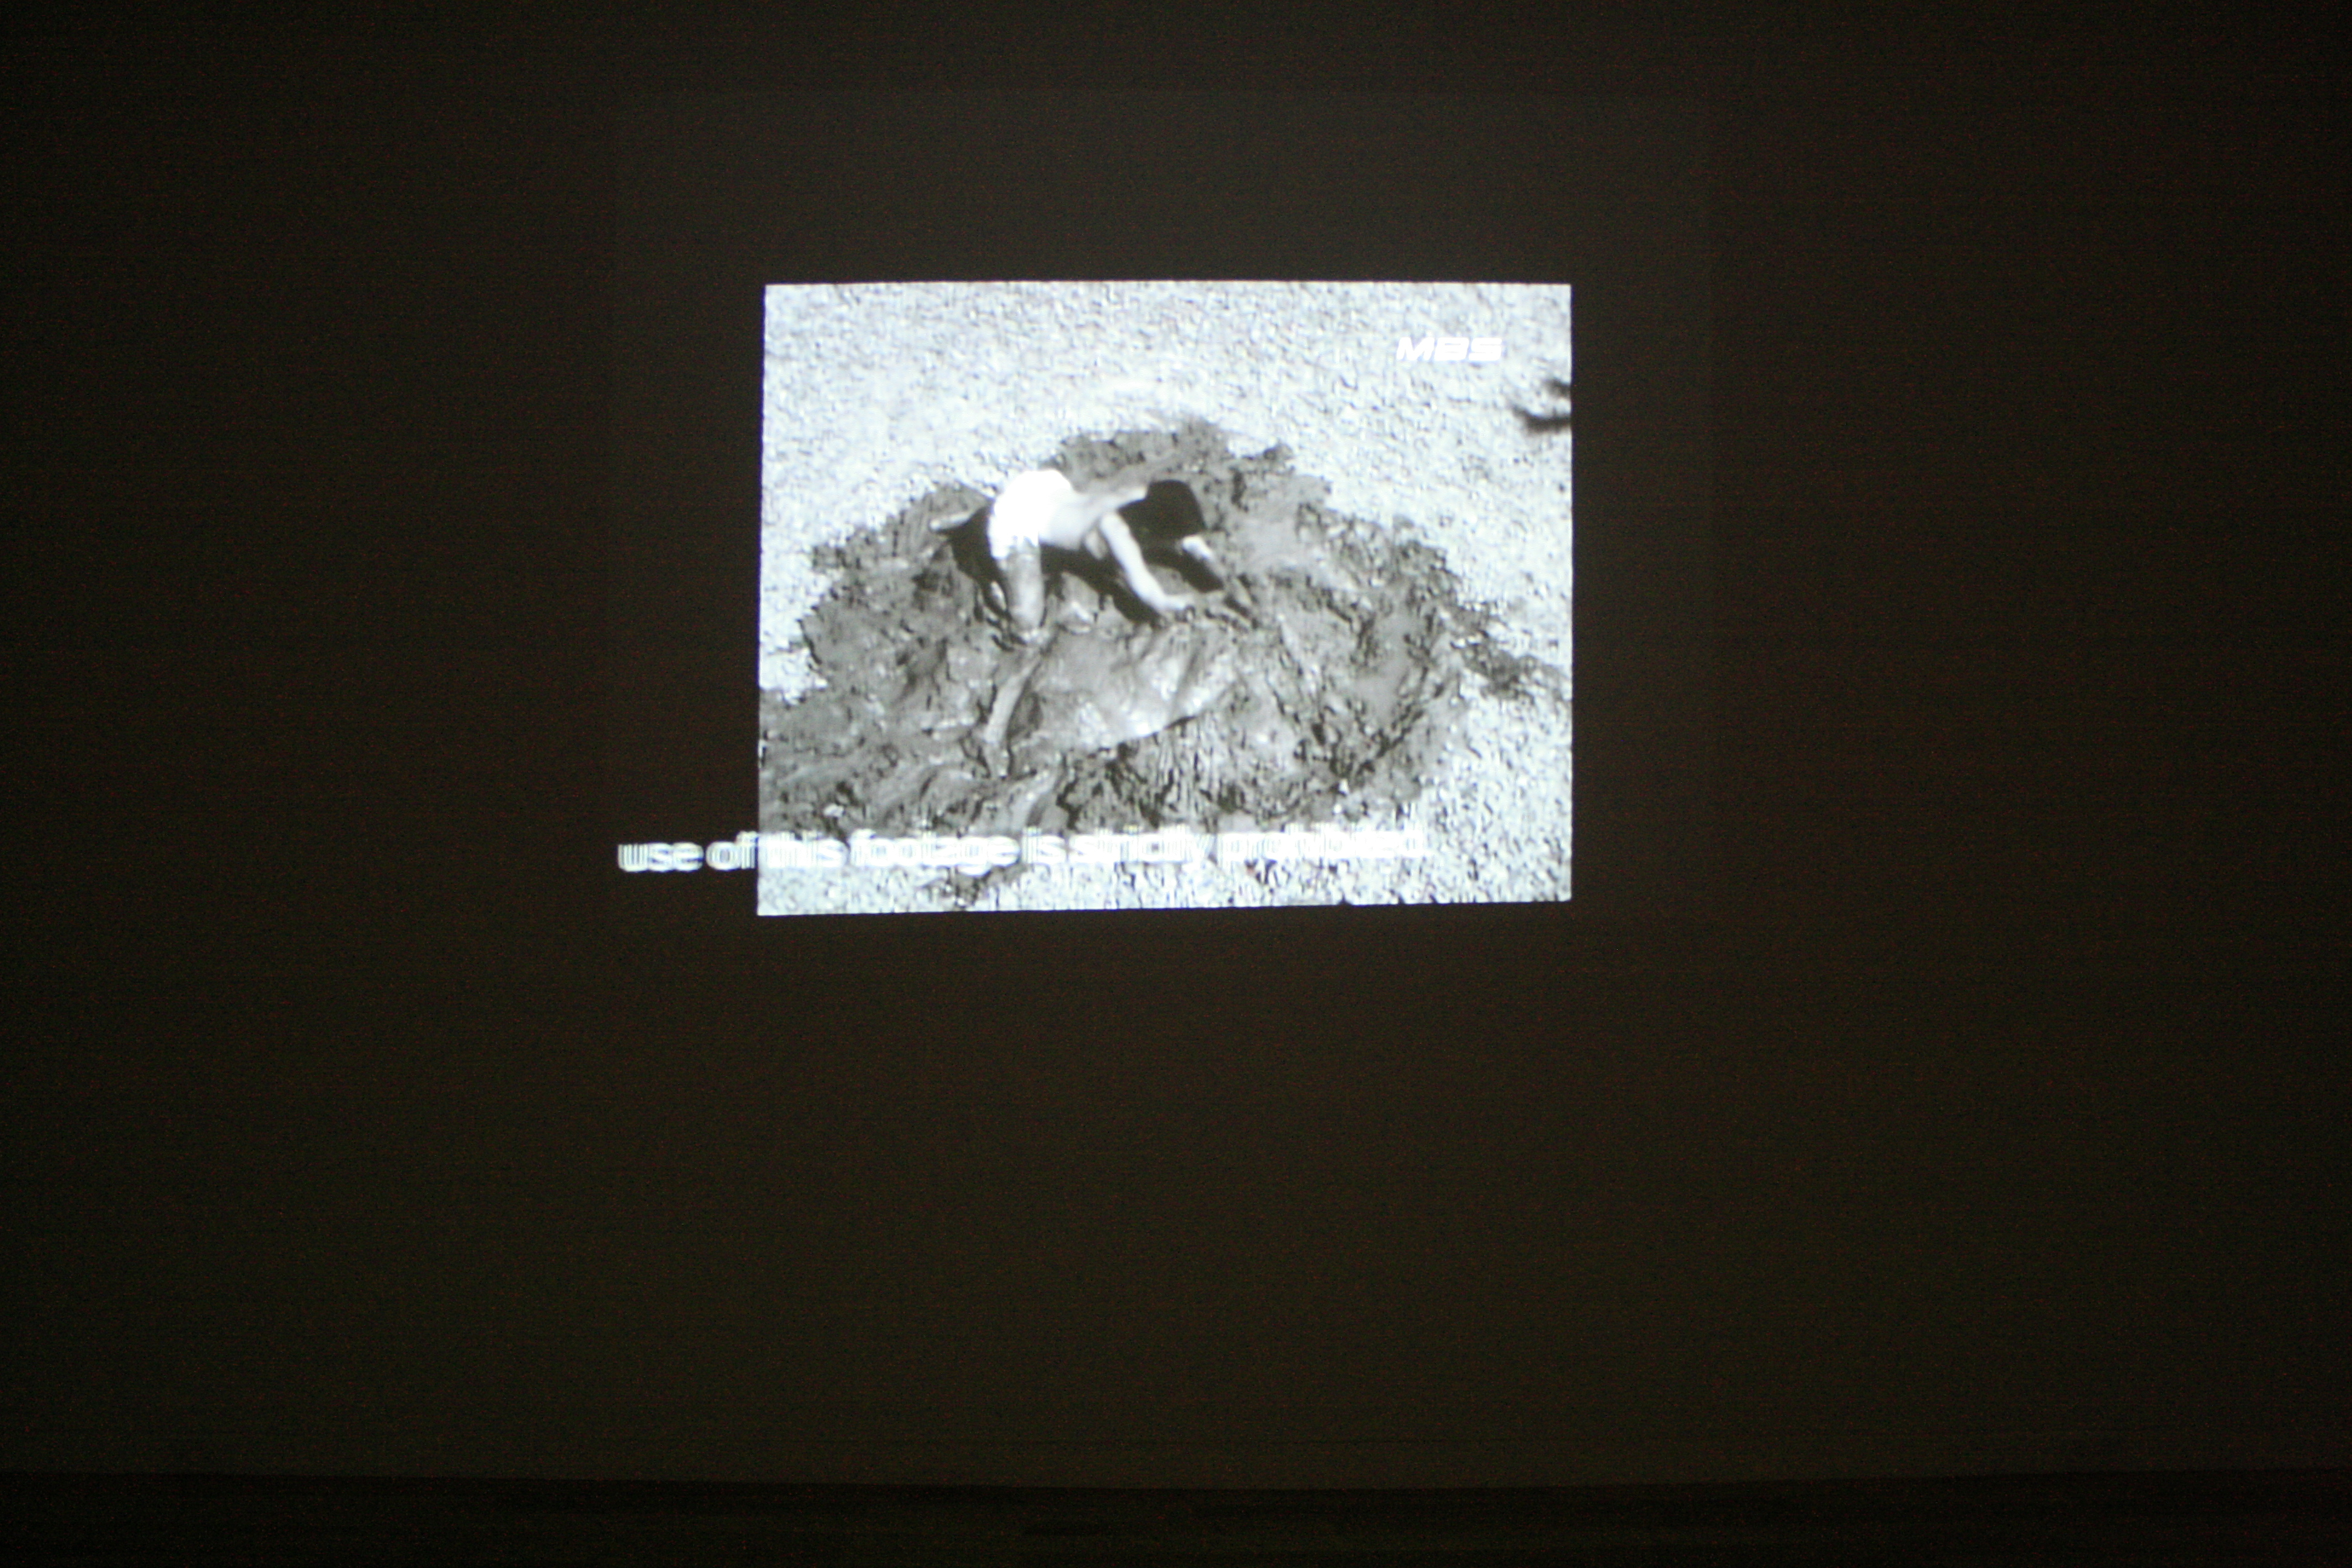 Photograph 2 from Gutai Documents: Film and Journal exhibition.